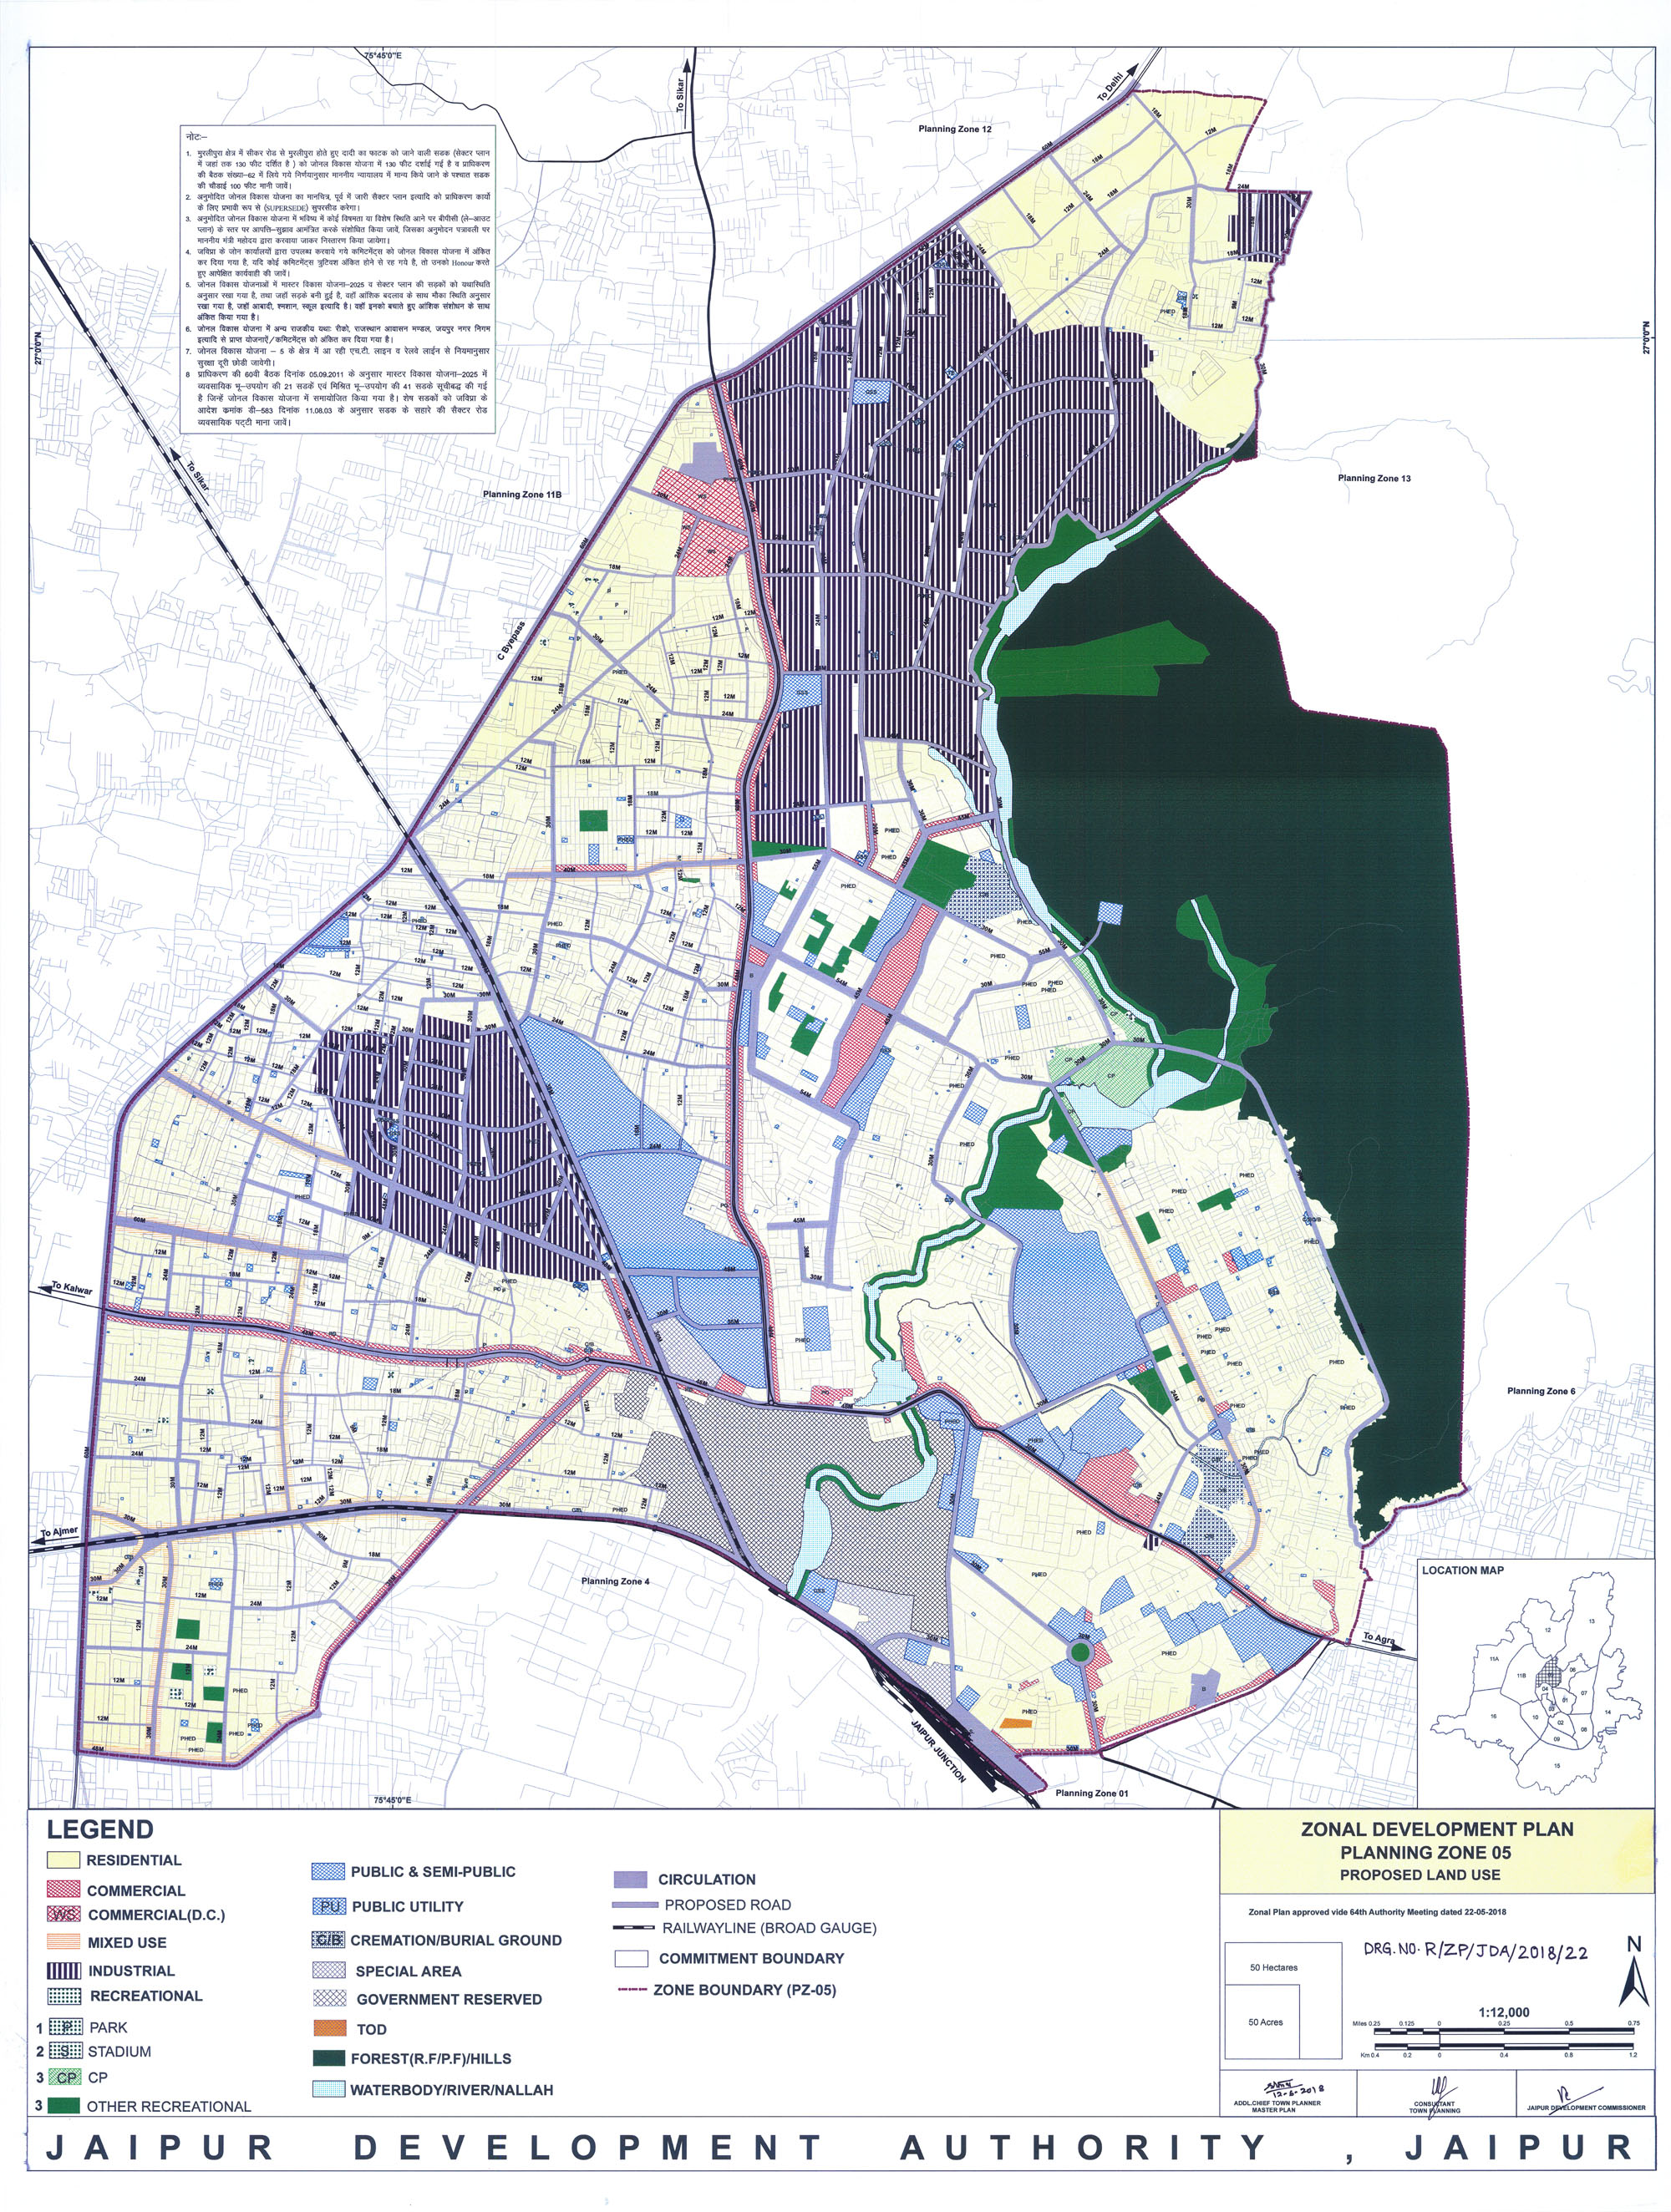 Zonal Development Plan (Draft/Approved)